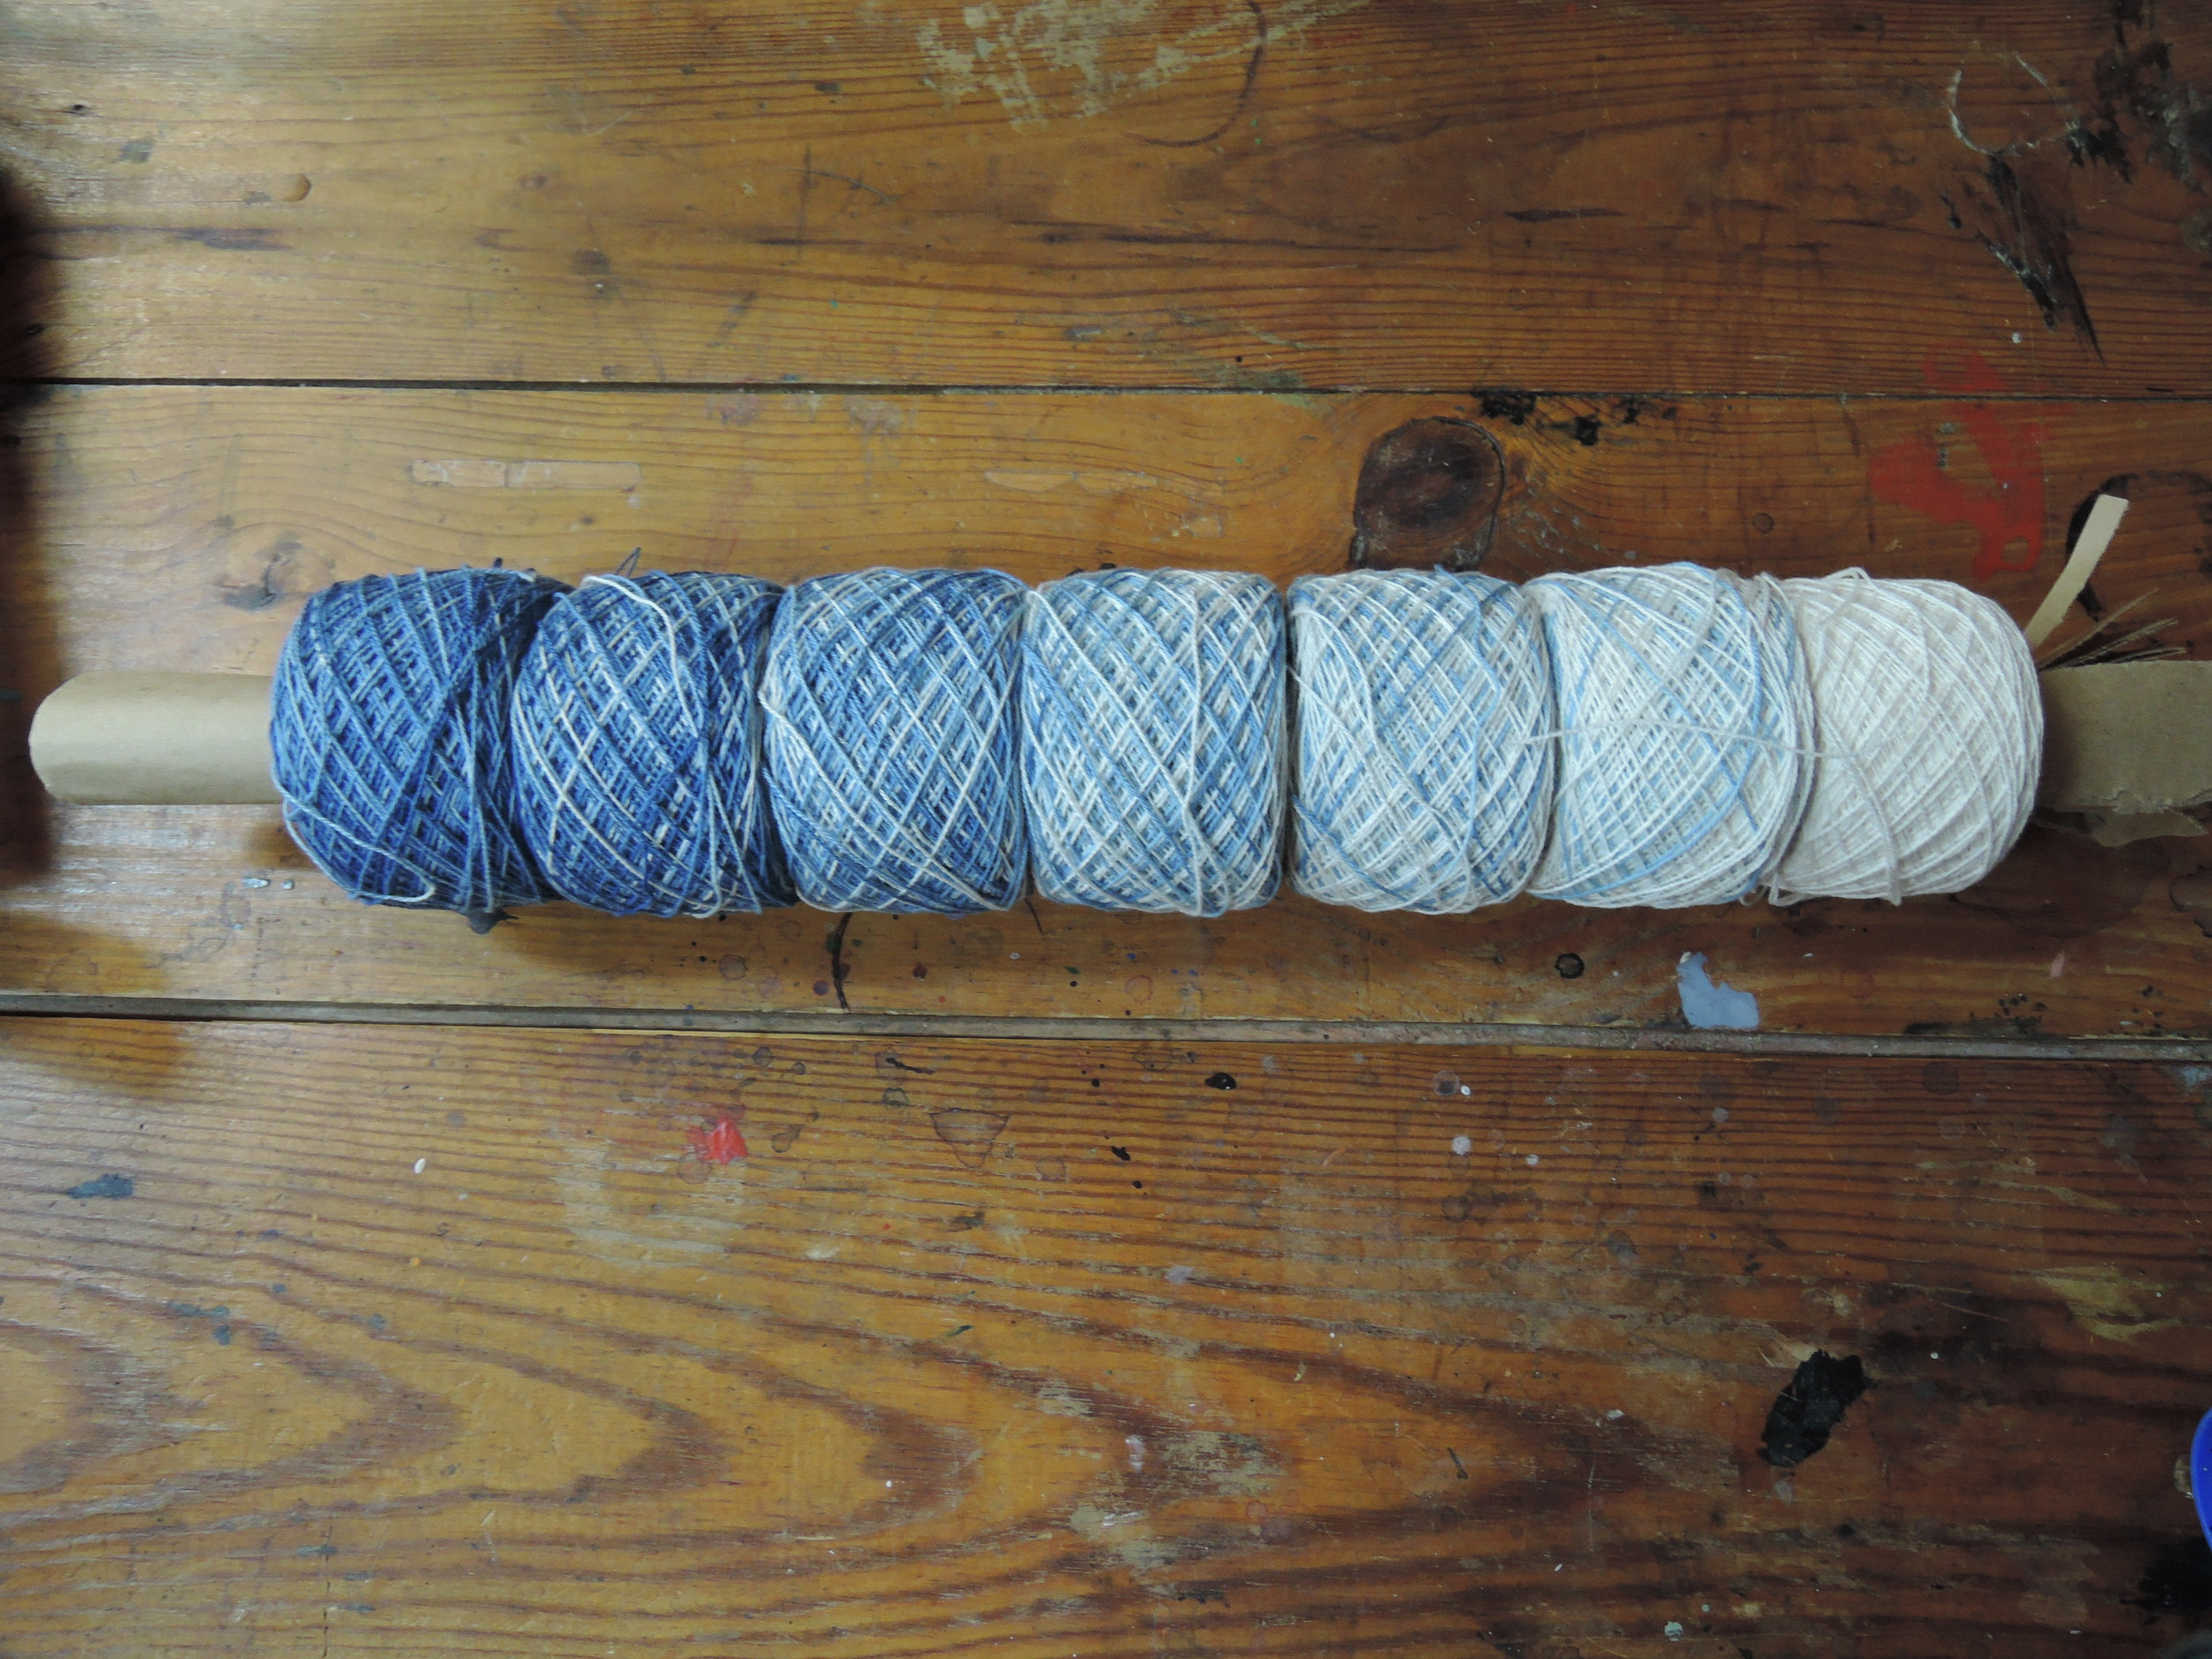 The yarn is dyed, dryed, balled, and ready for weaving.